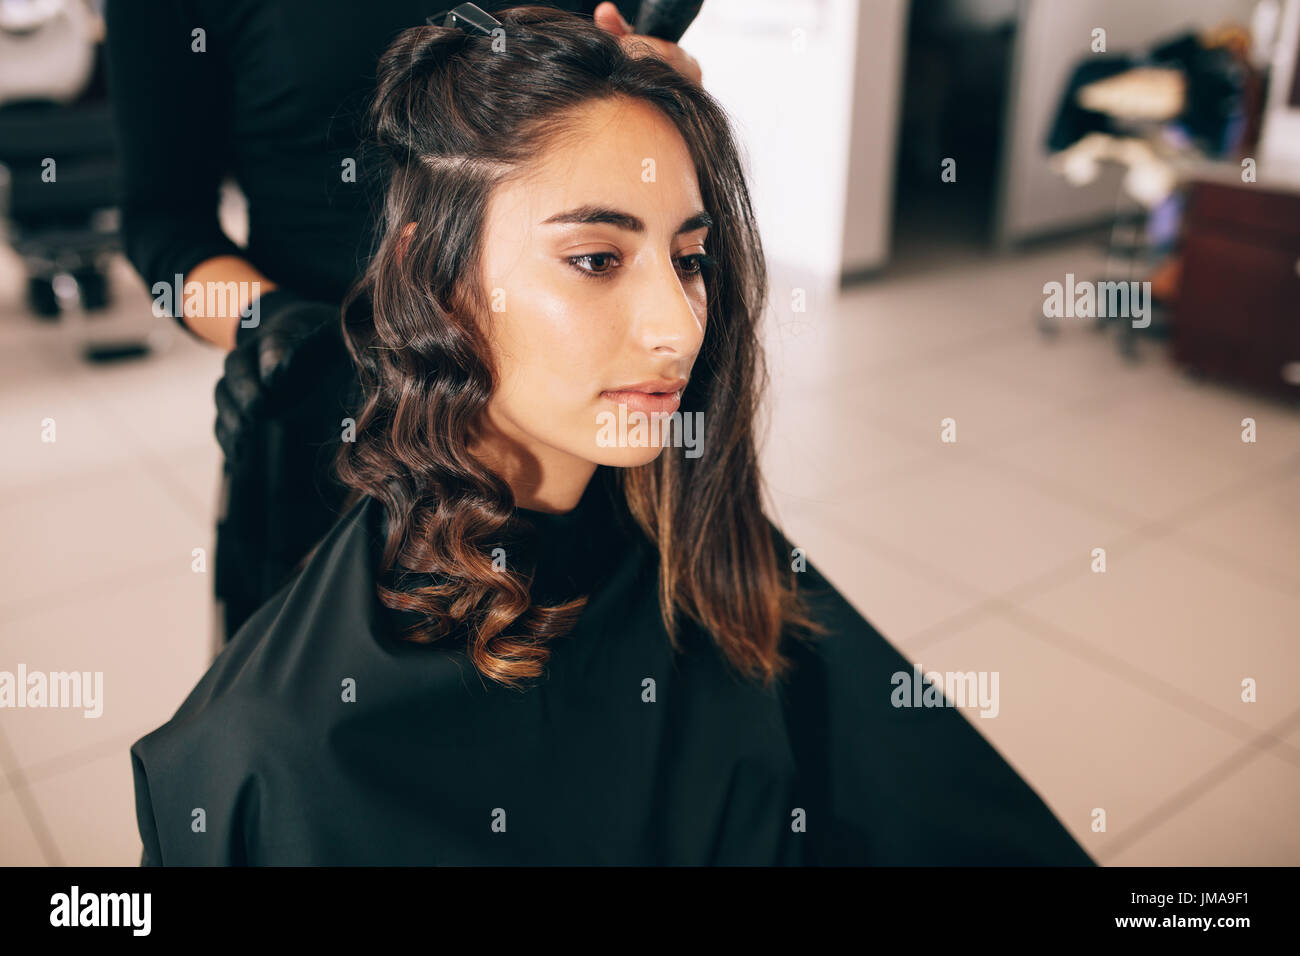 Close up of young woman at the salon getting her hair styled. Hair stylist turning straight hair into curly. - Stock Image